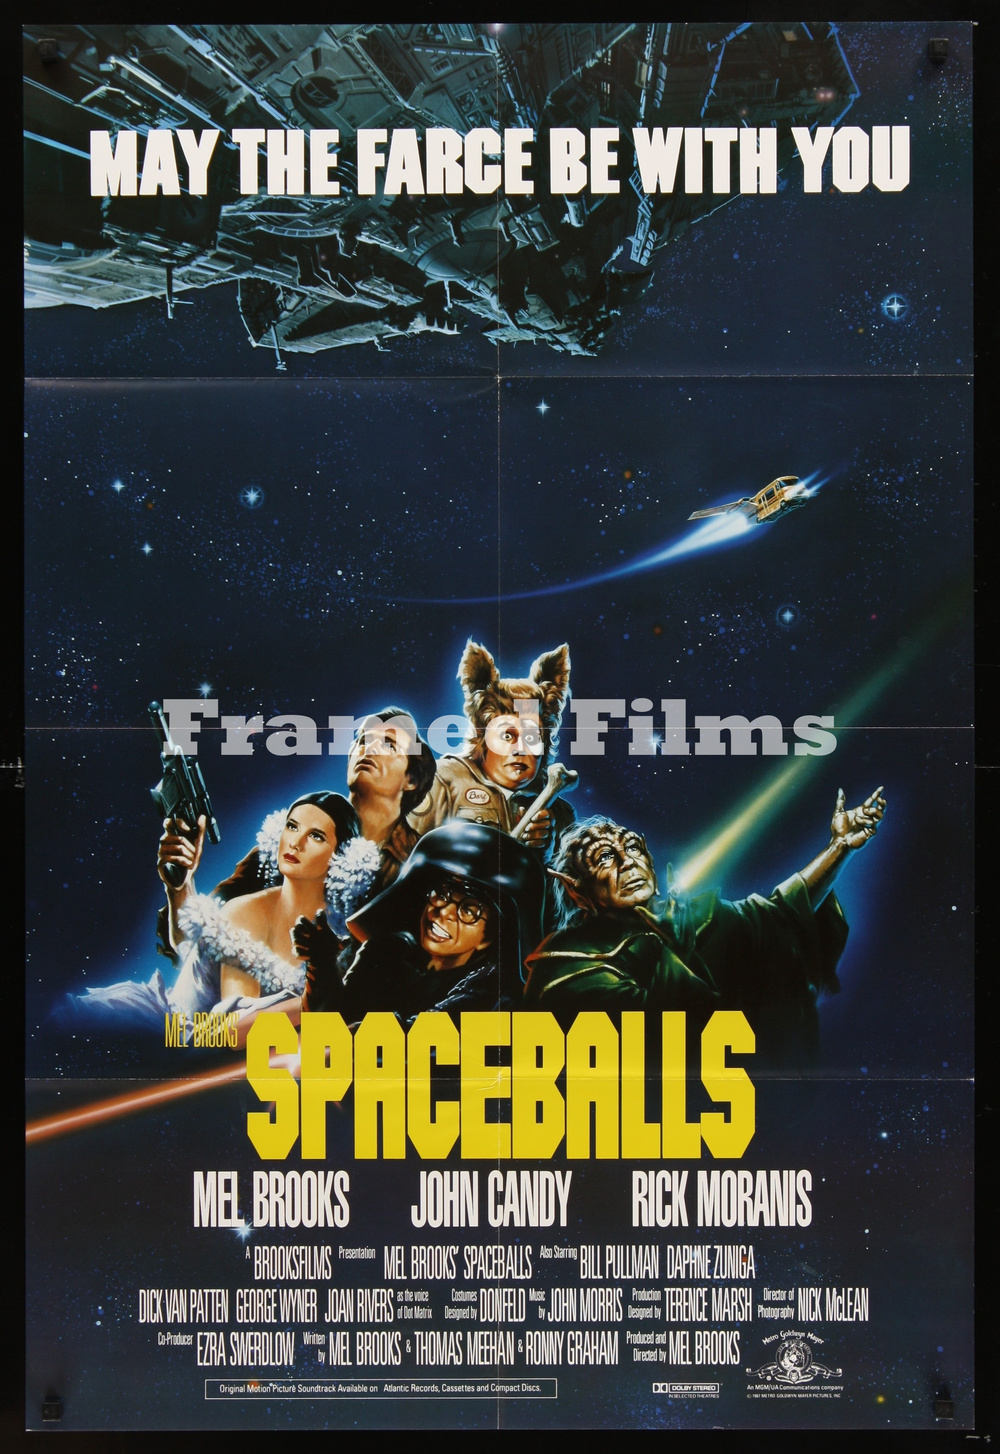 spaceballs_NZ03970_L.jpg